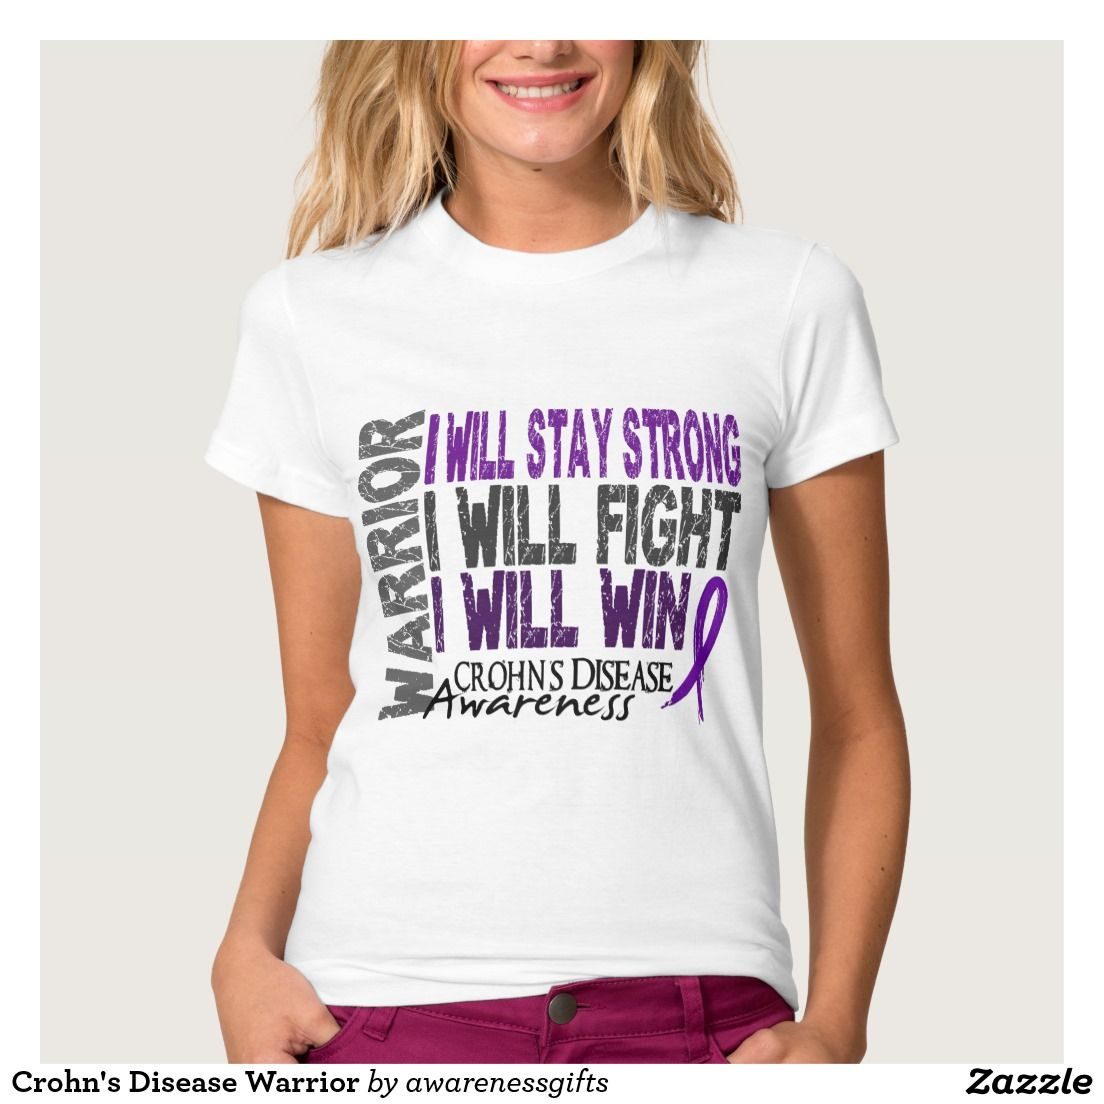 Crohn's Disease Warrior TShirt (With images